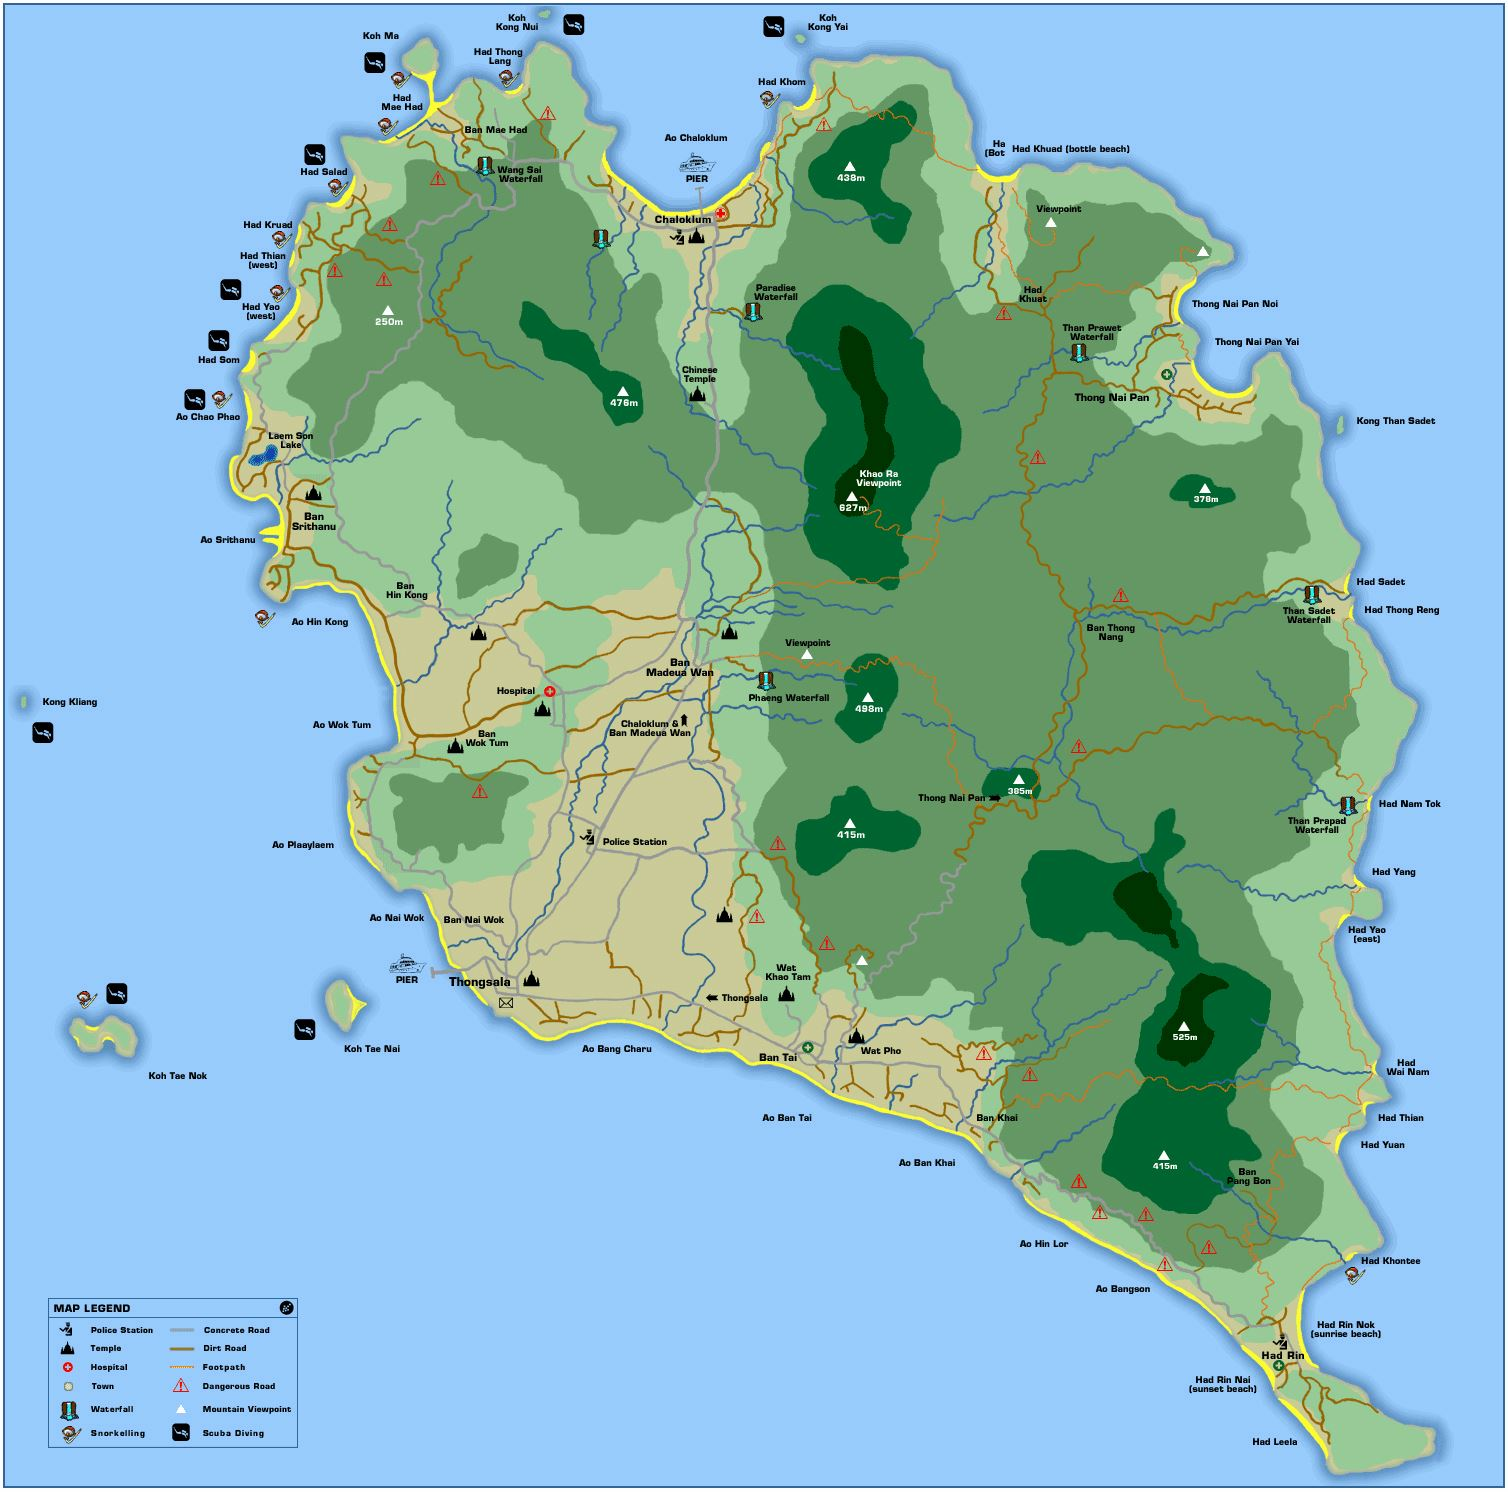 koh phangan karte Large Ko Pha Ngan Island Maps for Free Download and Print | High